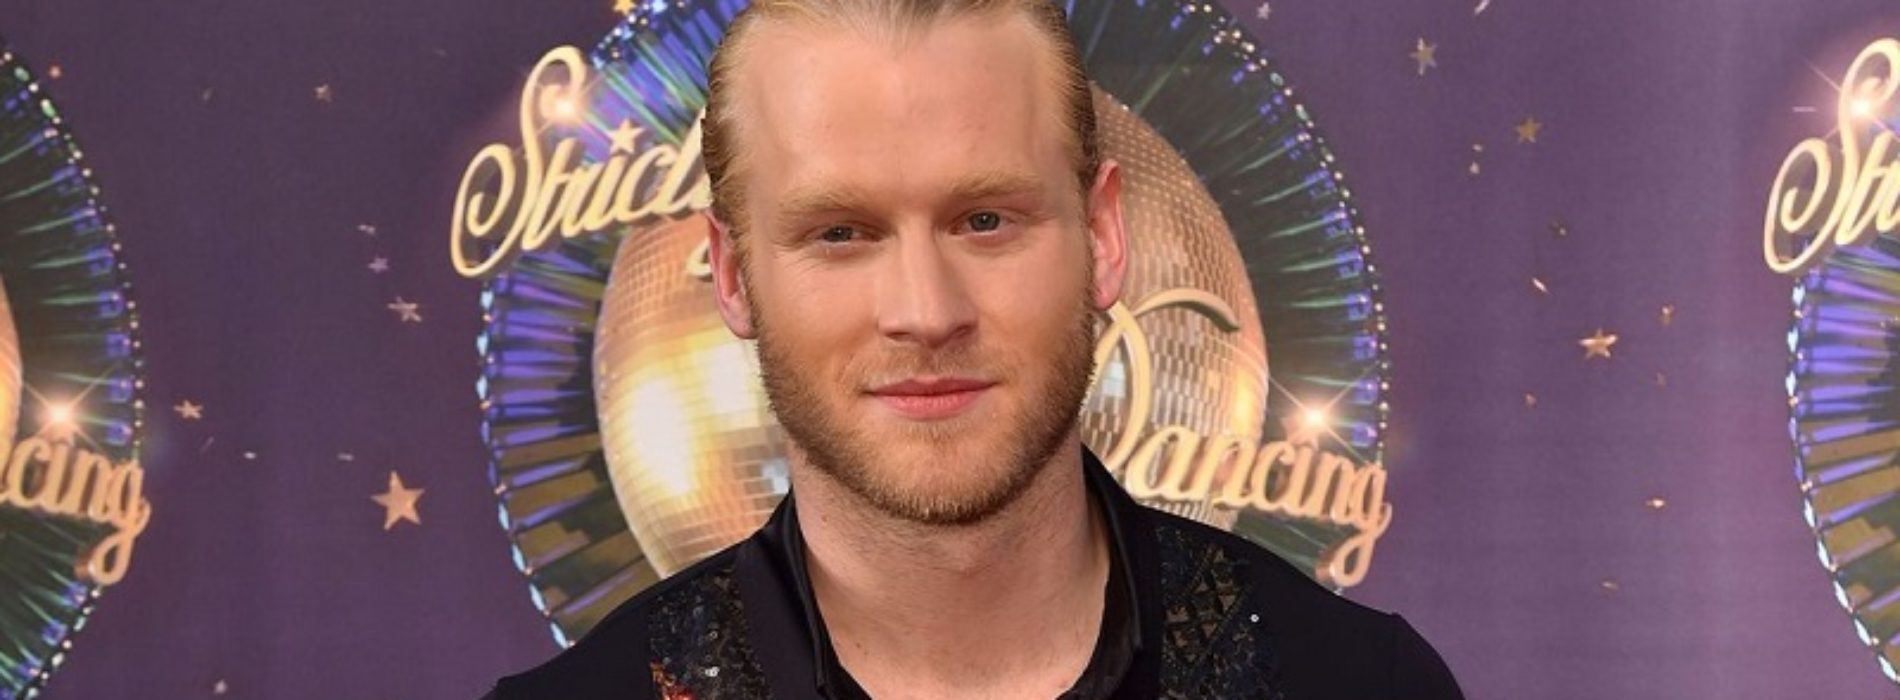 Are you excited about Jonnie Peacock being on Strictly Come Dancing?